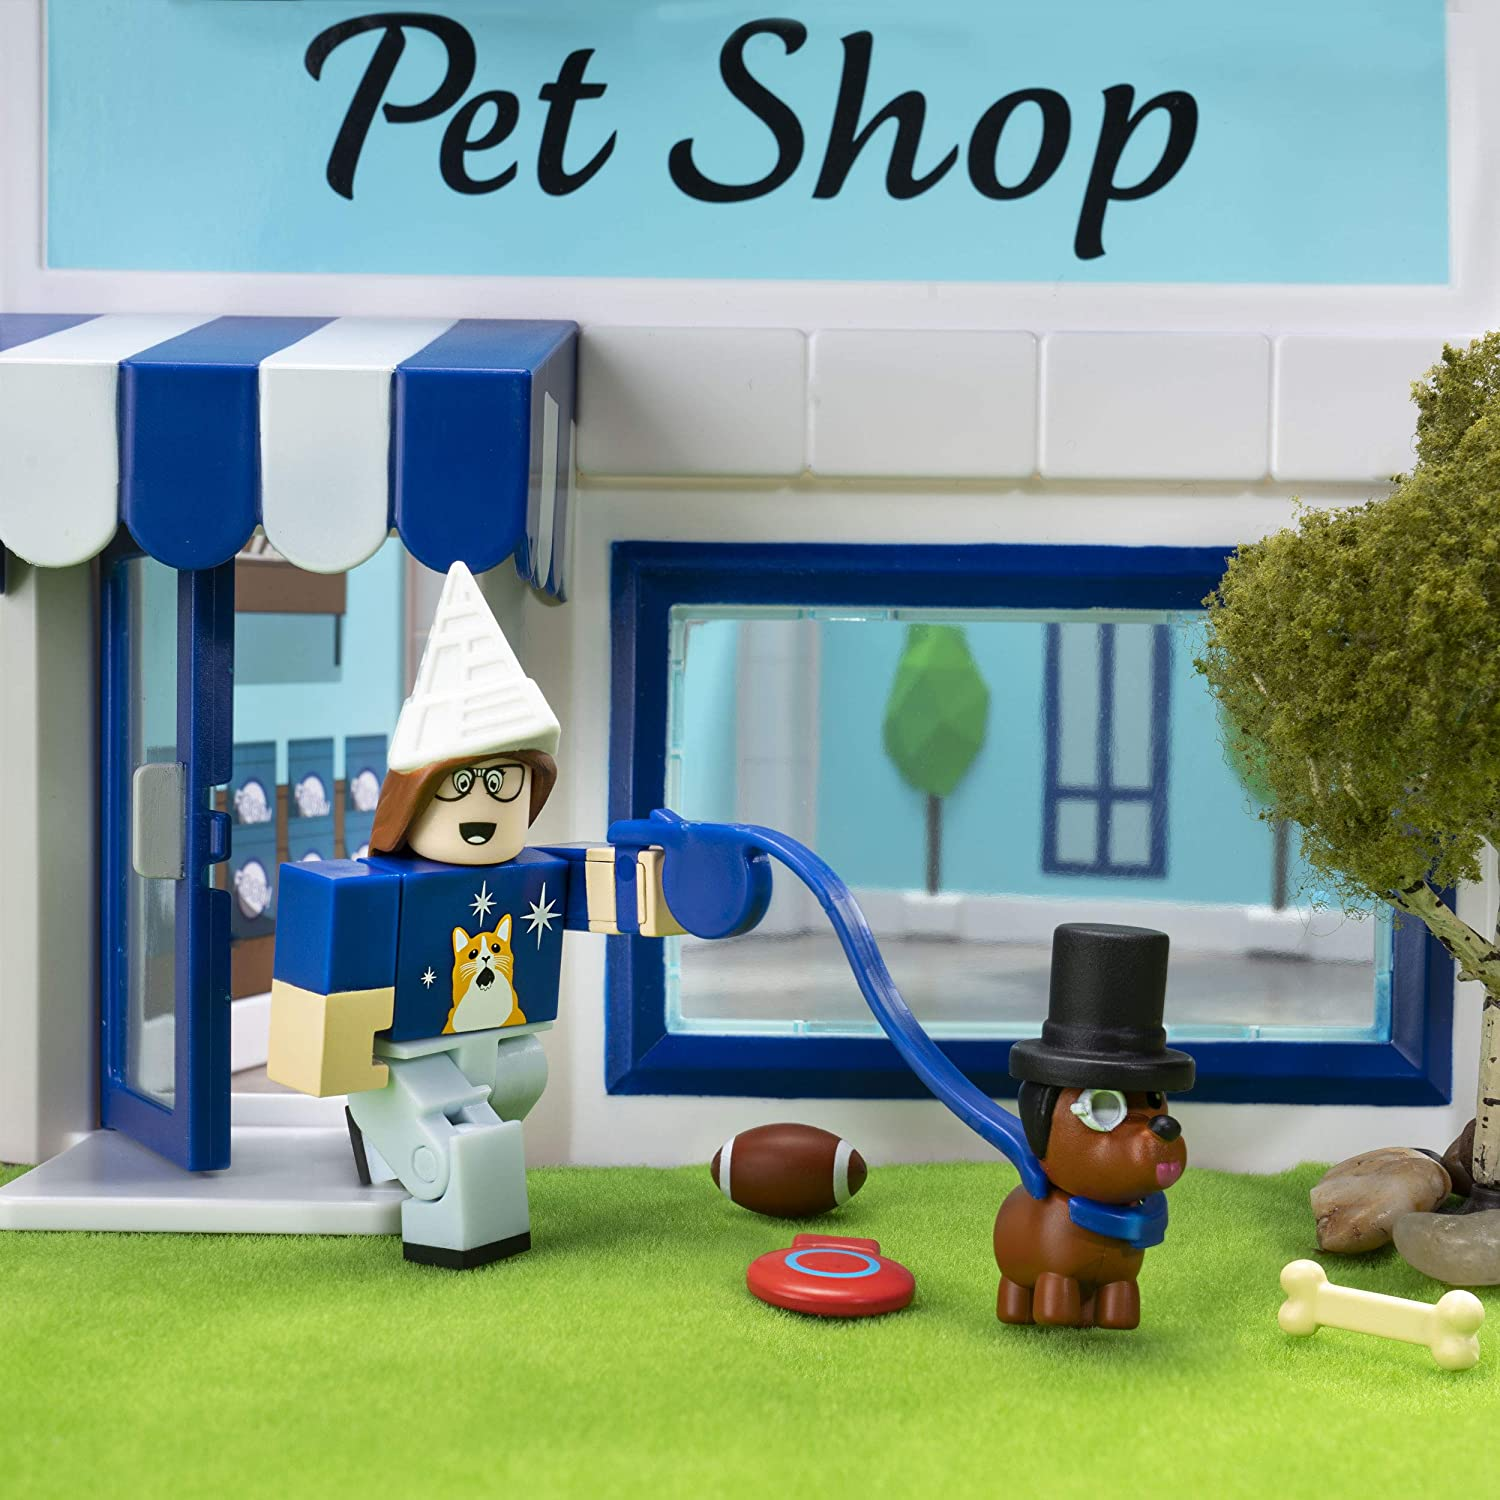 Roblox Celebrity Collection - Adopt Me: Pet Store Deluxe Playset [Includes Exclusive Virtual Item]: Toys & Games